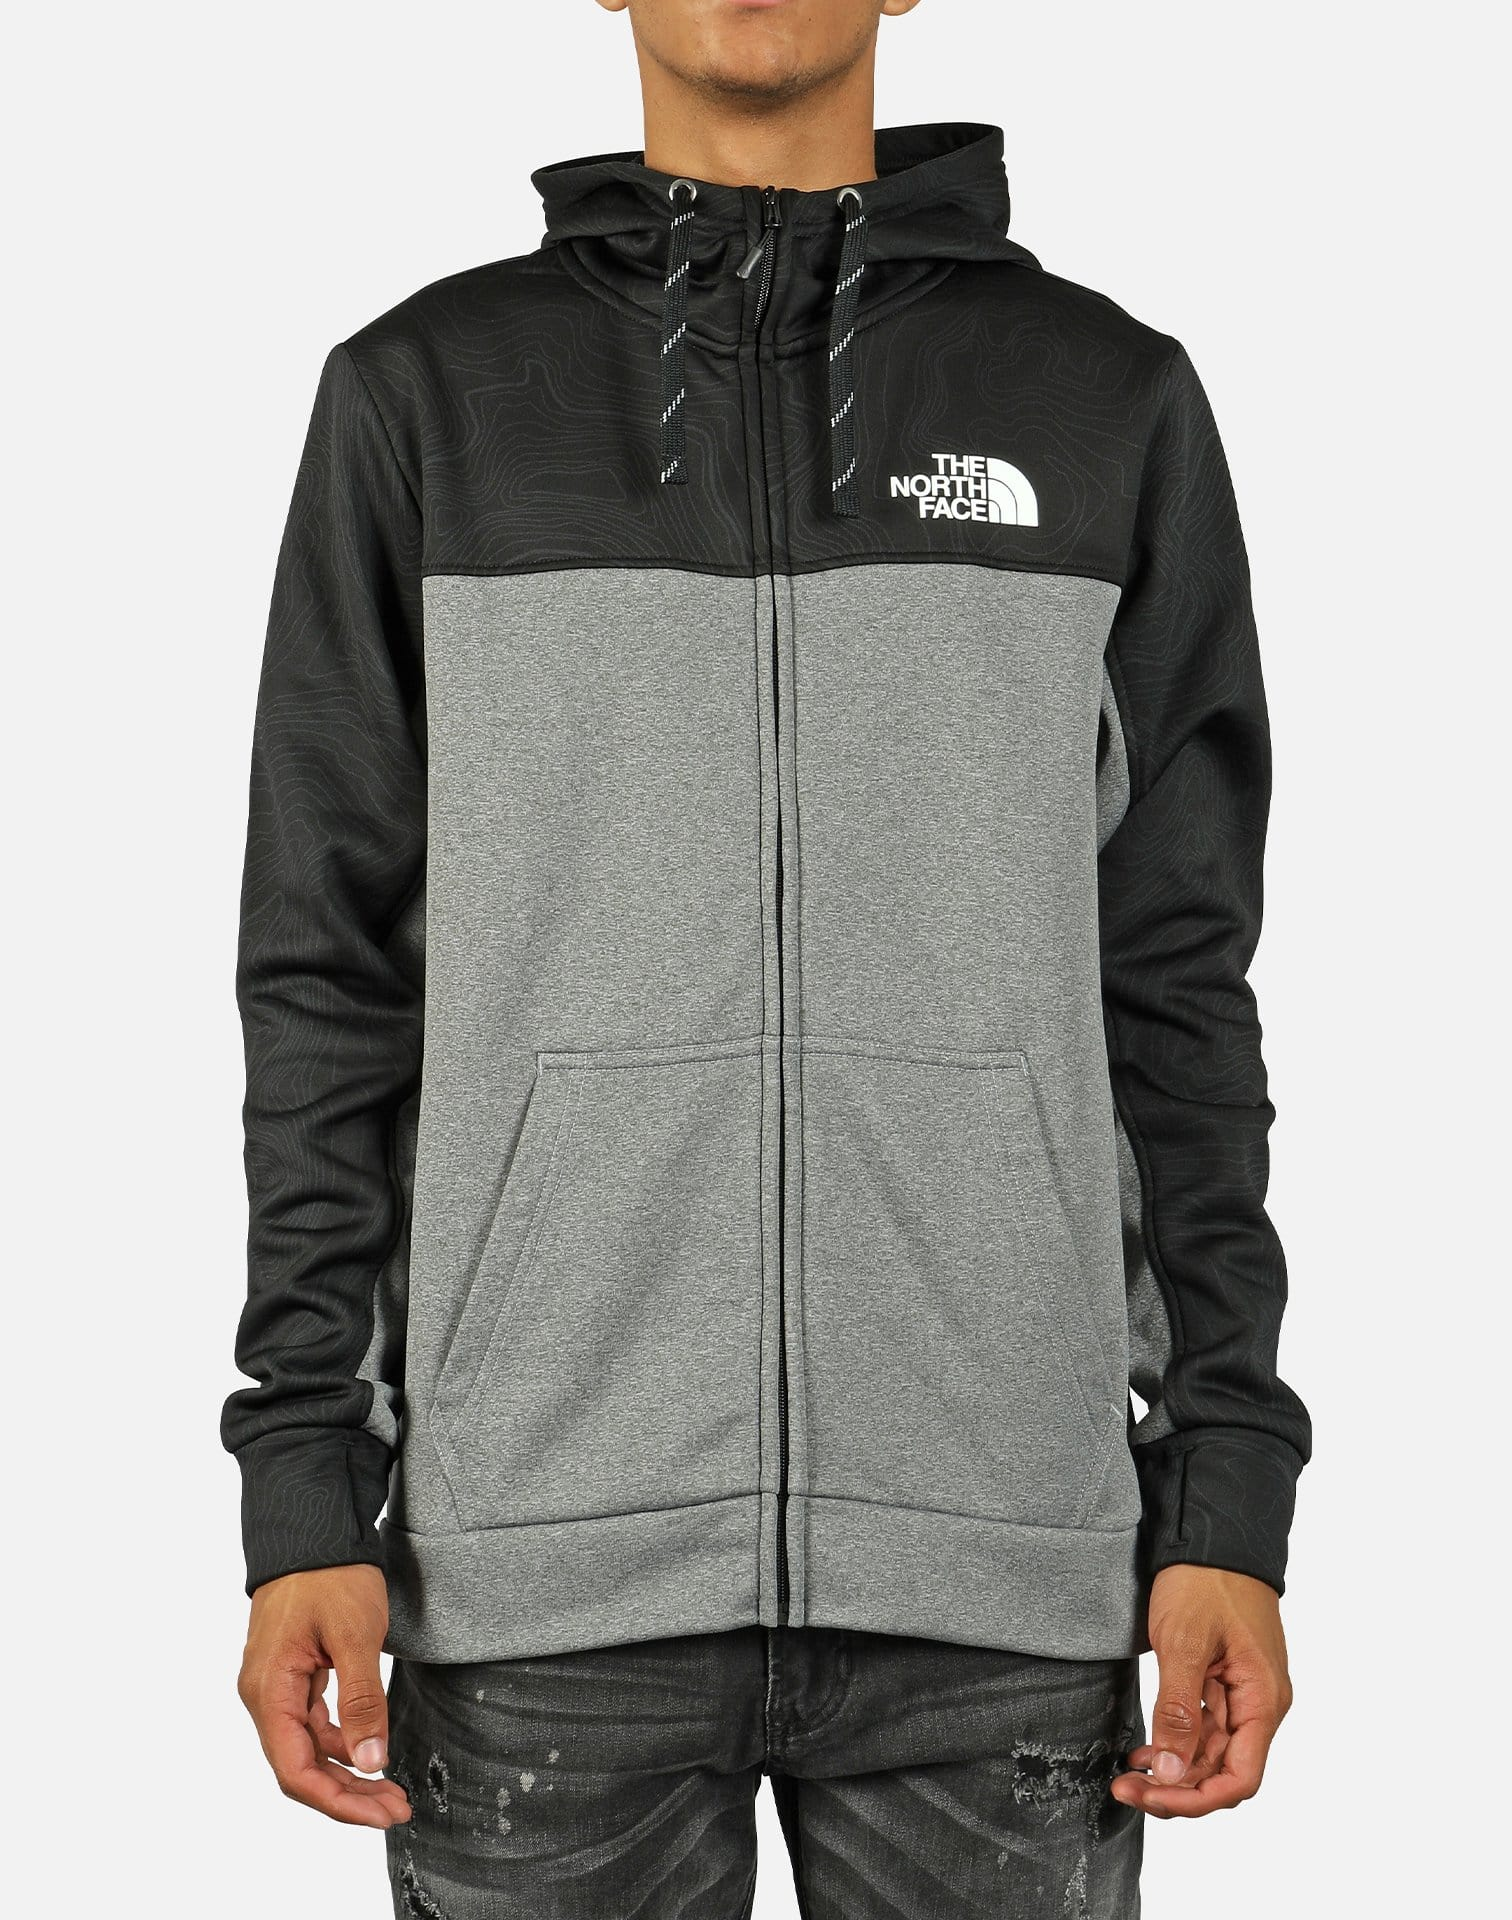 The North Face Men's Surgent Bloc Full Zip Hoodie 2.0